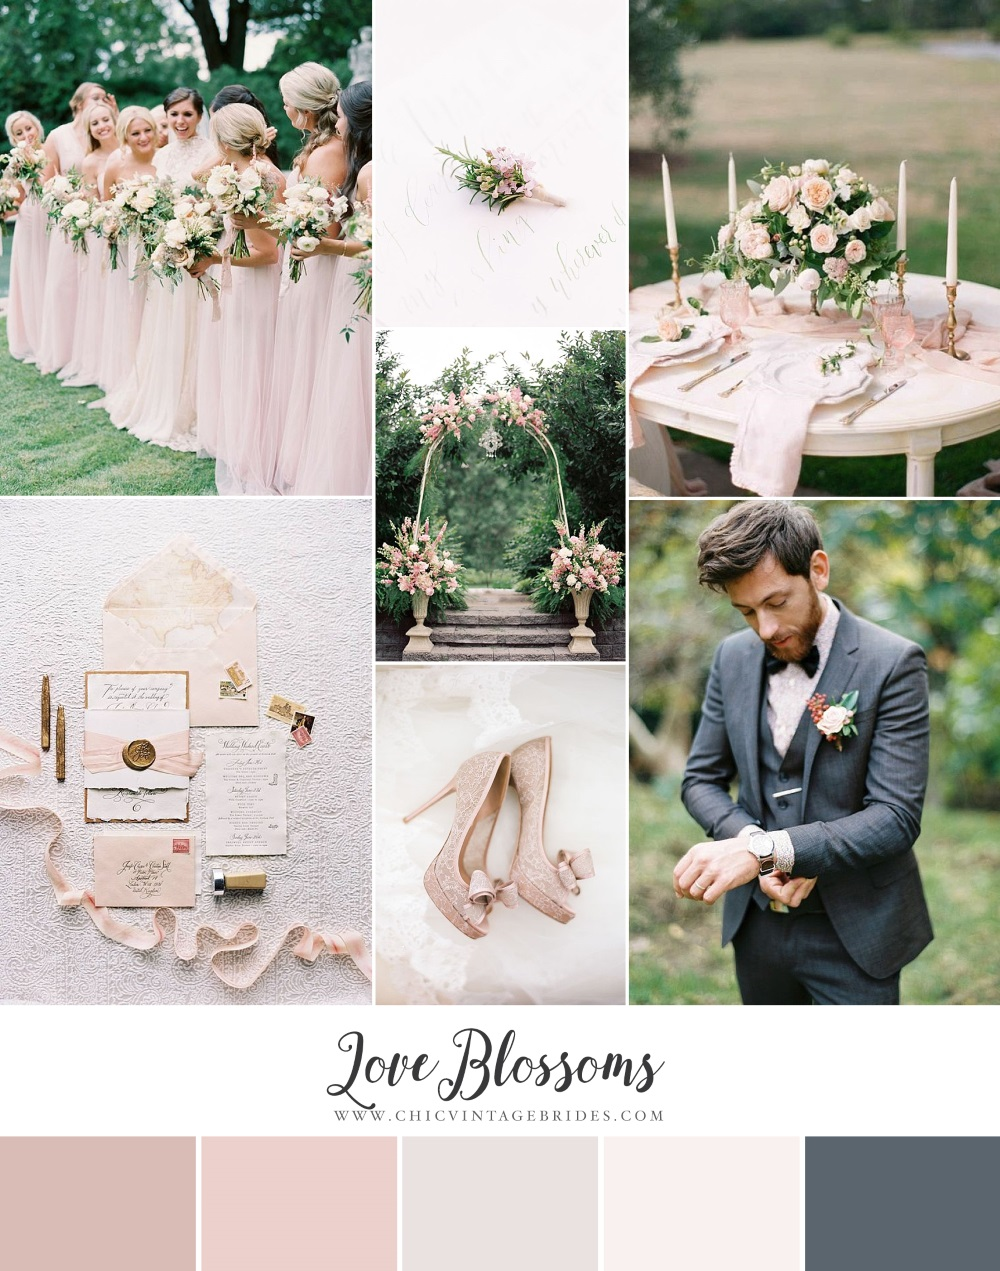 Love Blossoms - Spring Wedding Inspiration in a Pretty Palette of Pinks & Dusky Blue